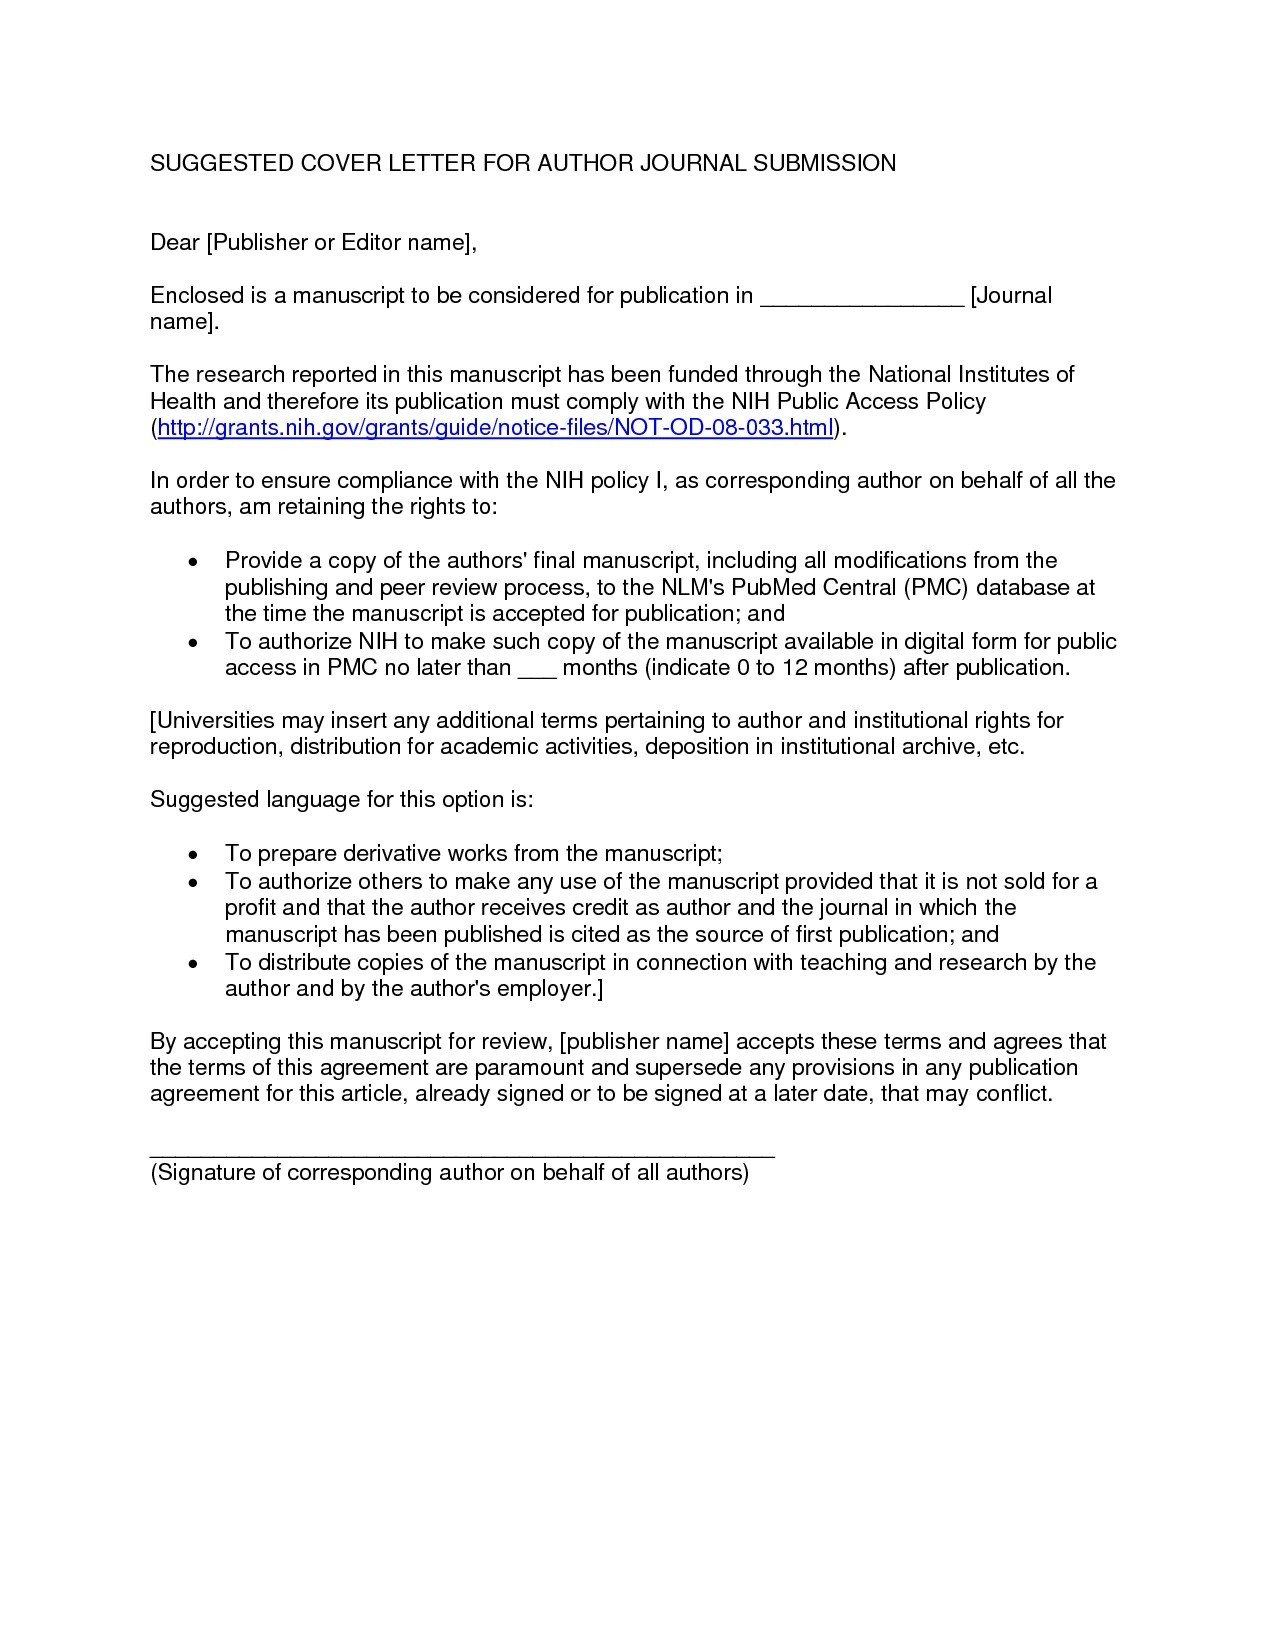 Trust Distribution Letter Template